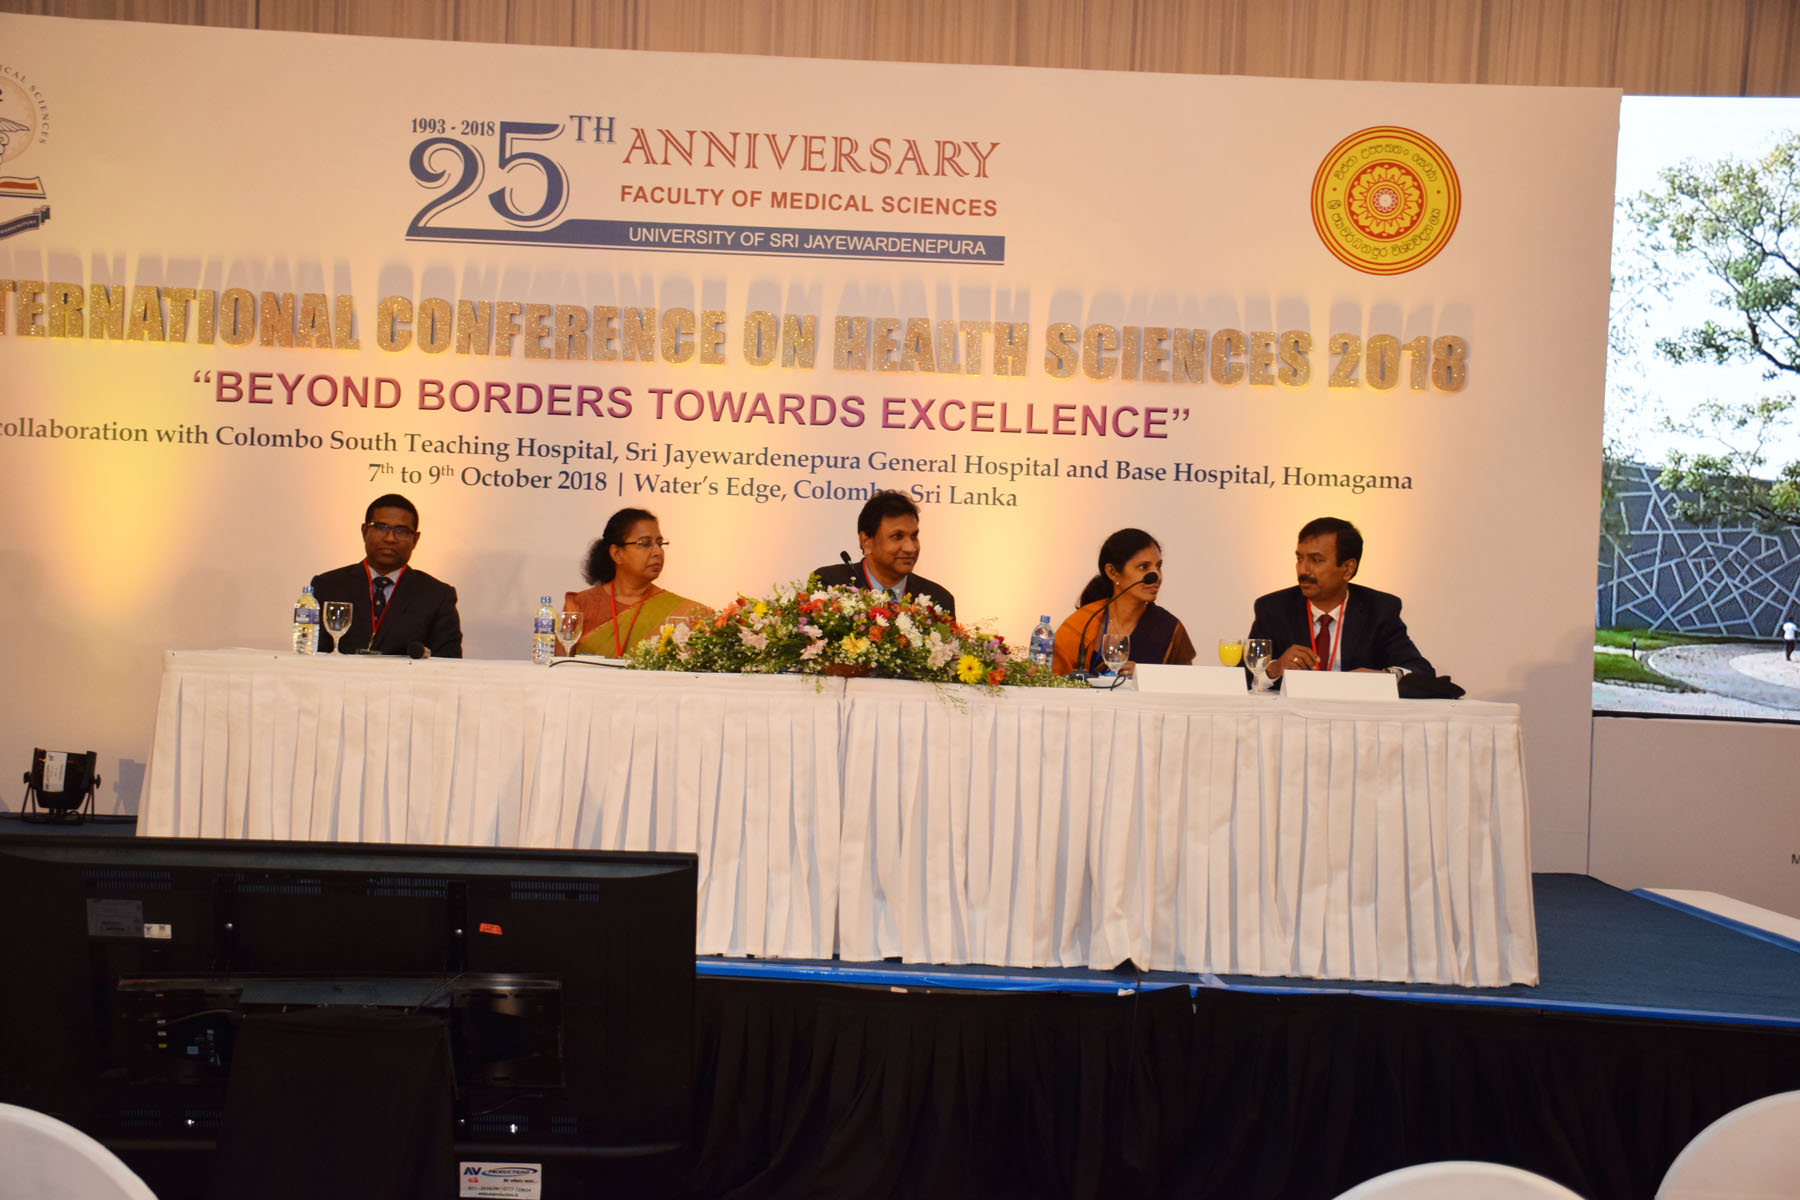 Home - International Conference on Health Sciences